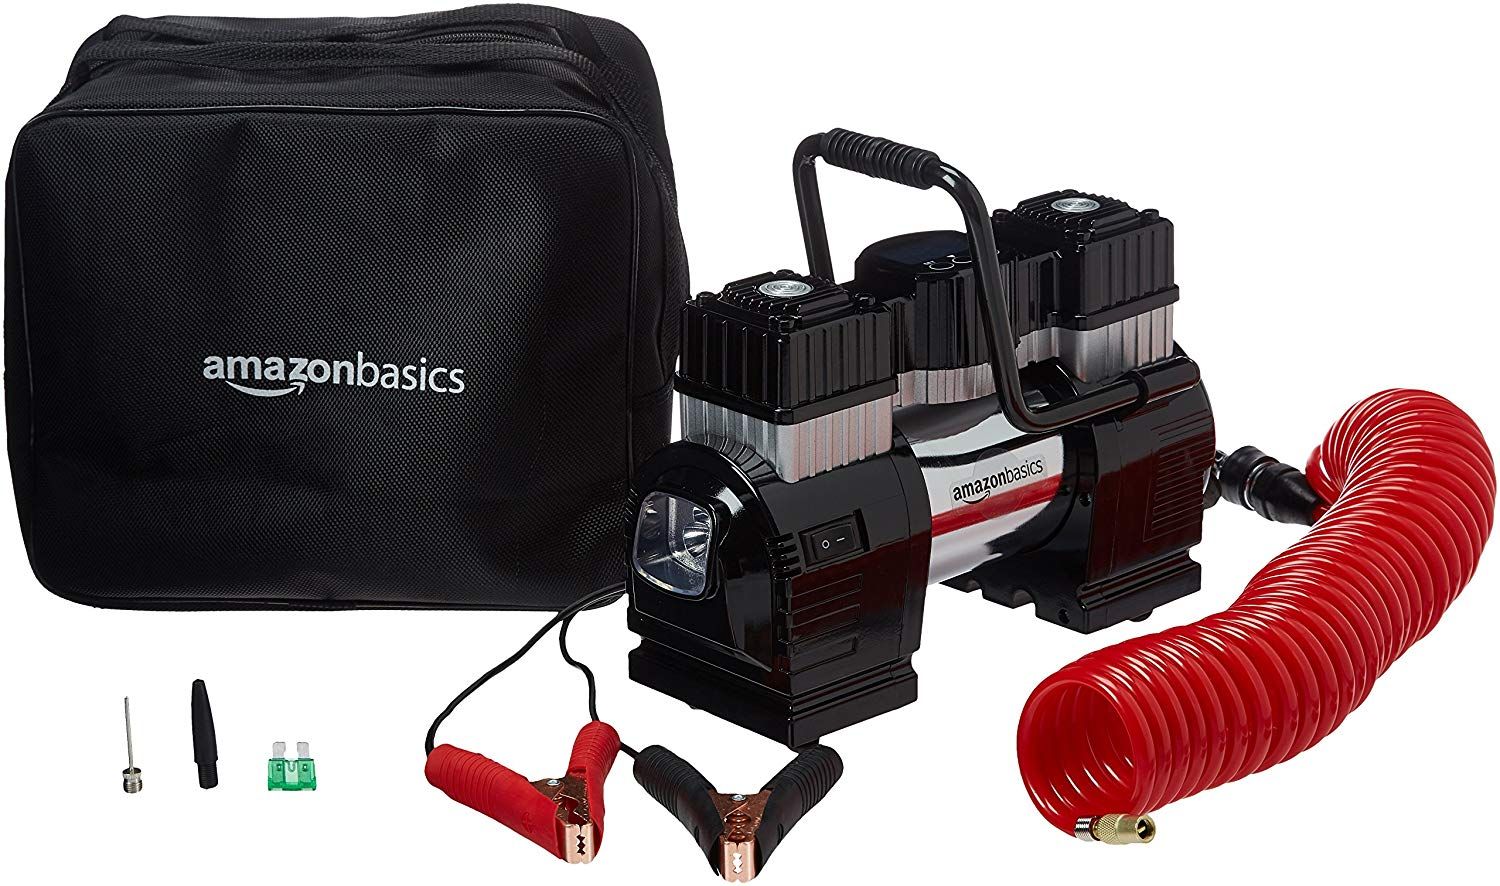 AmazonBasics Kompressor amazon